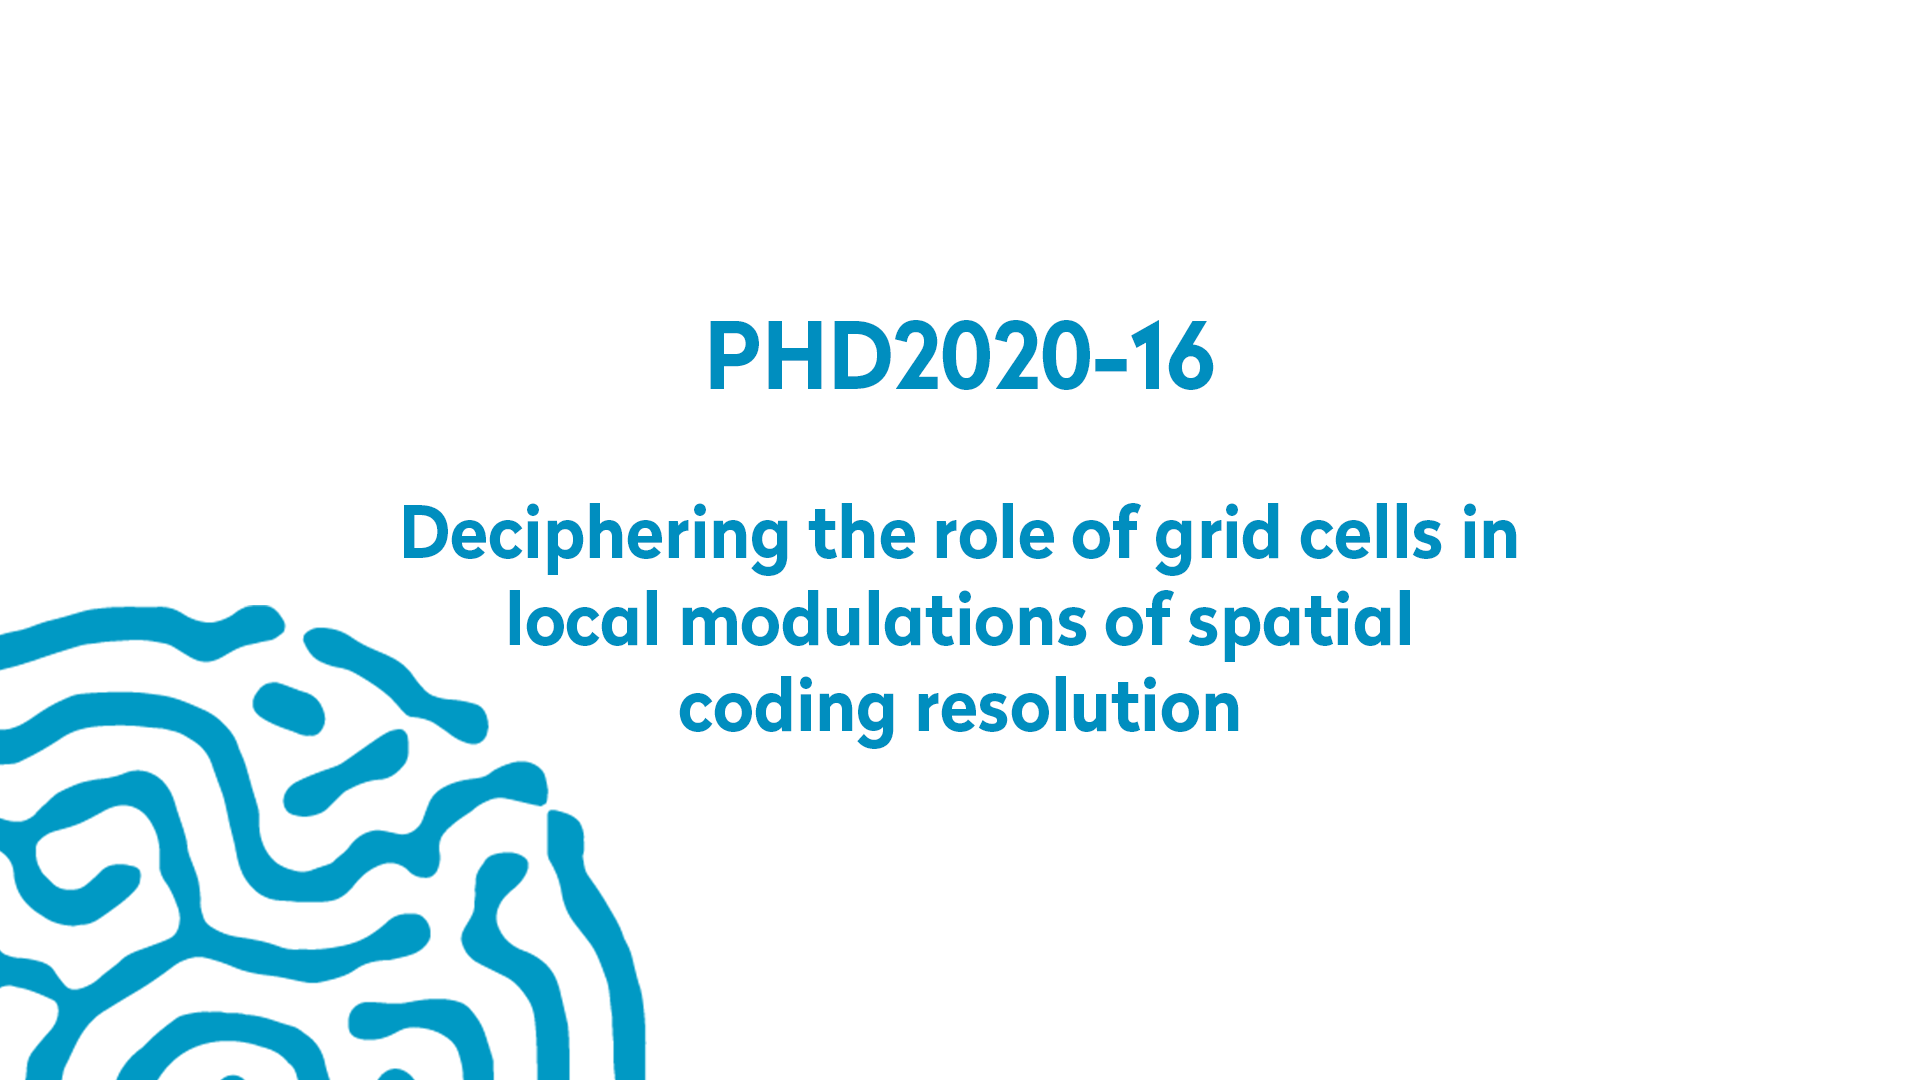 PHD2020-16 | Deciphering the role of grid cells in local modulations of spatial coding resolution